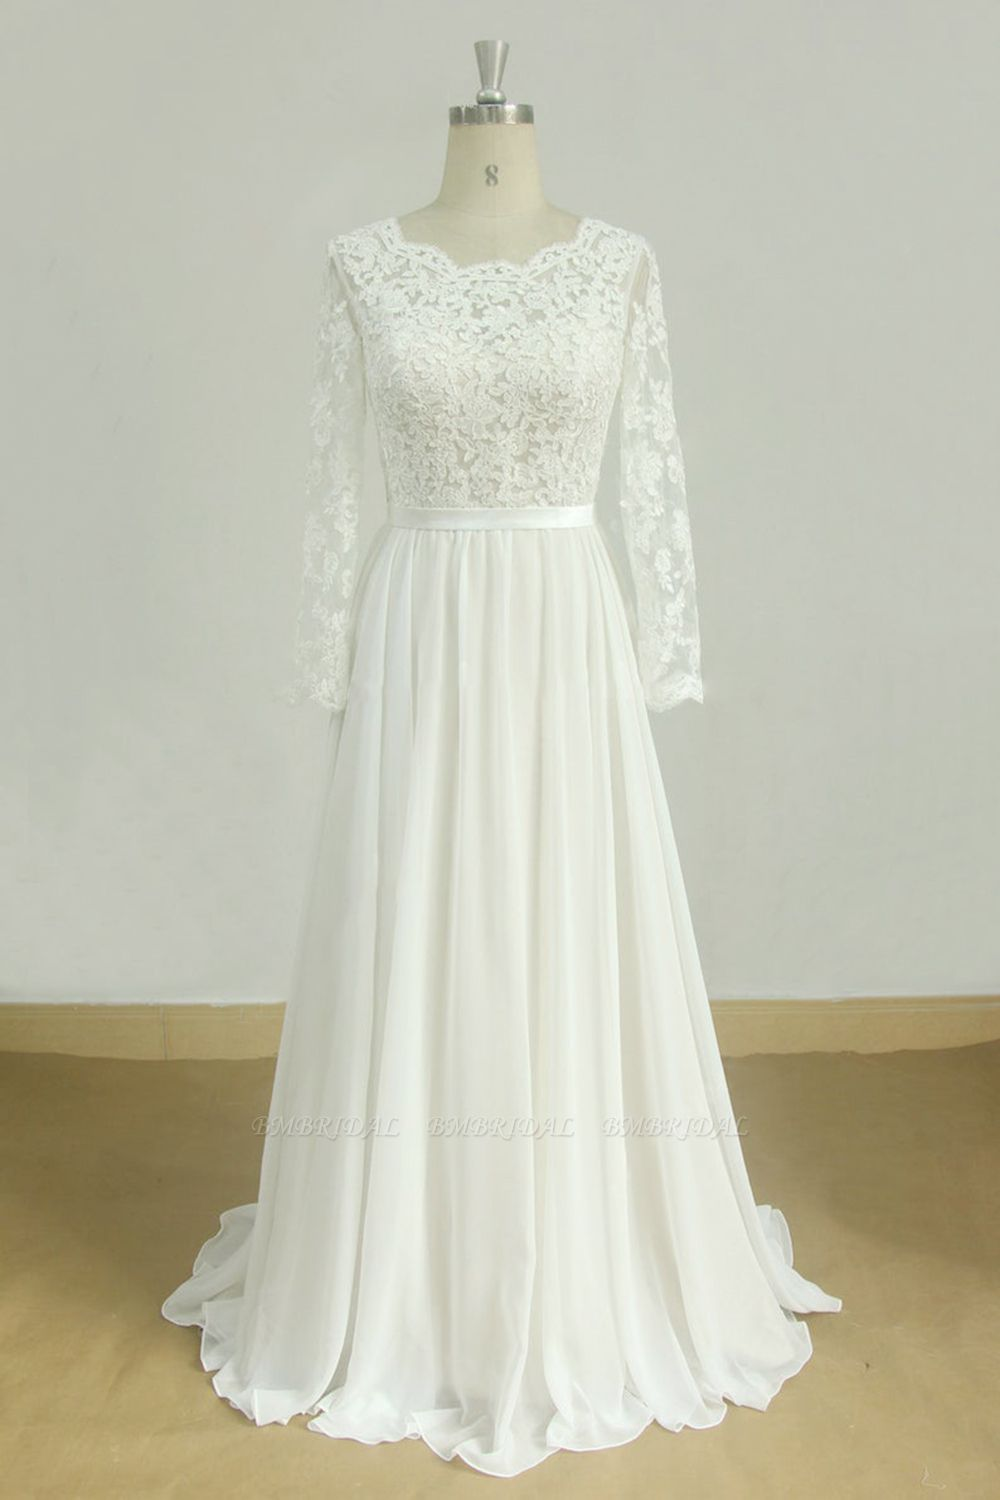 Glamorous A-line White Chiffon Wedding Dress Longsleeves Jewel Bridal Gowns On Sale